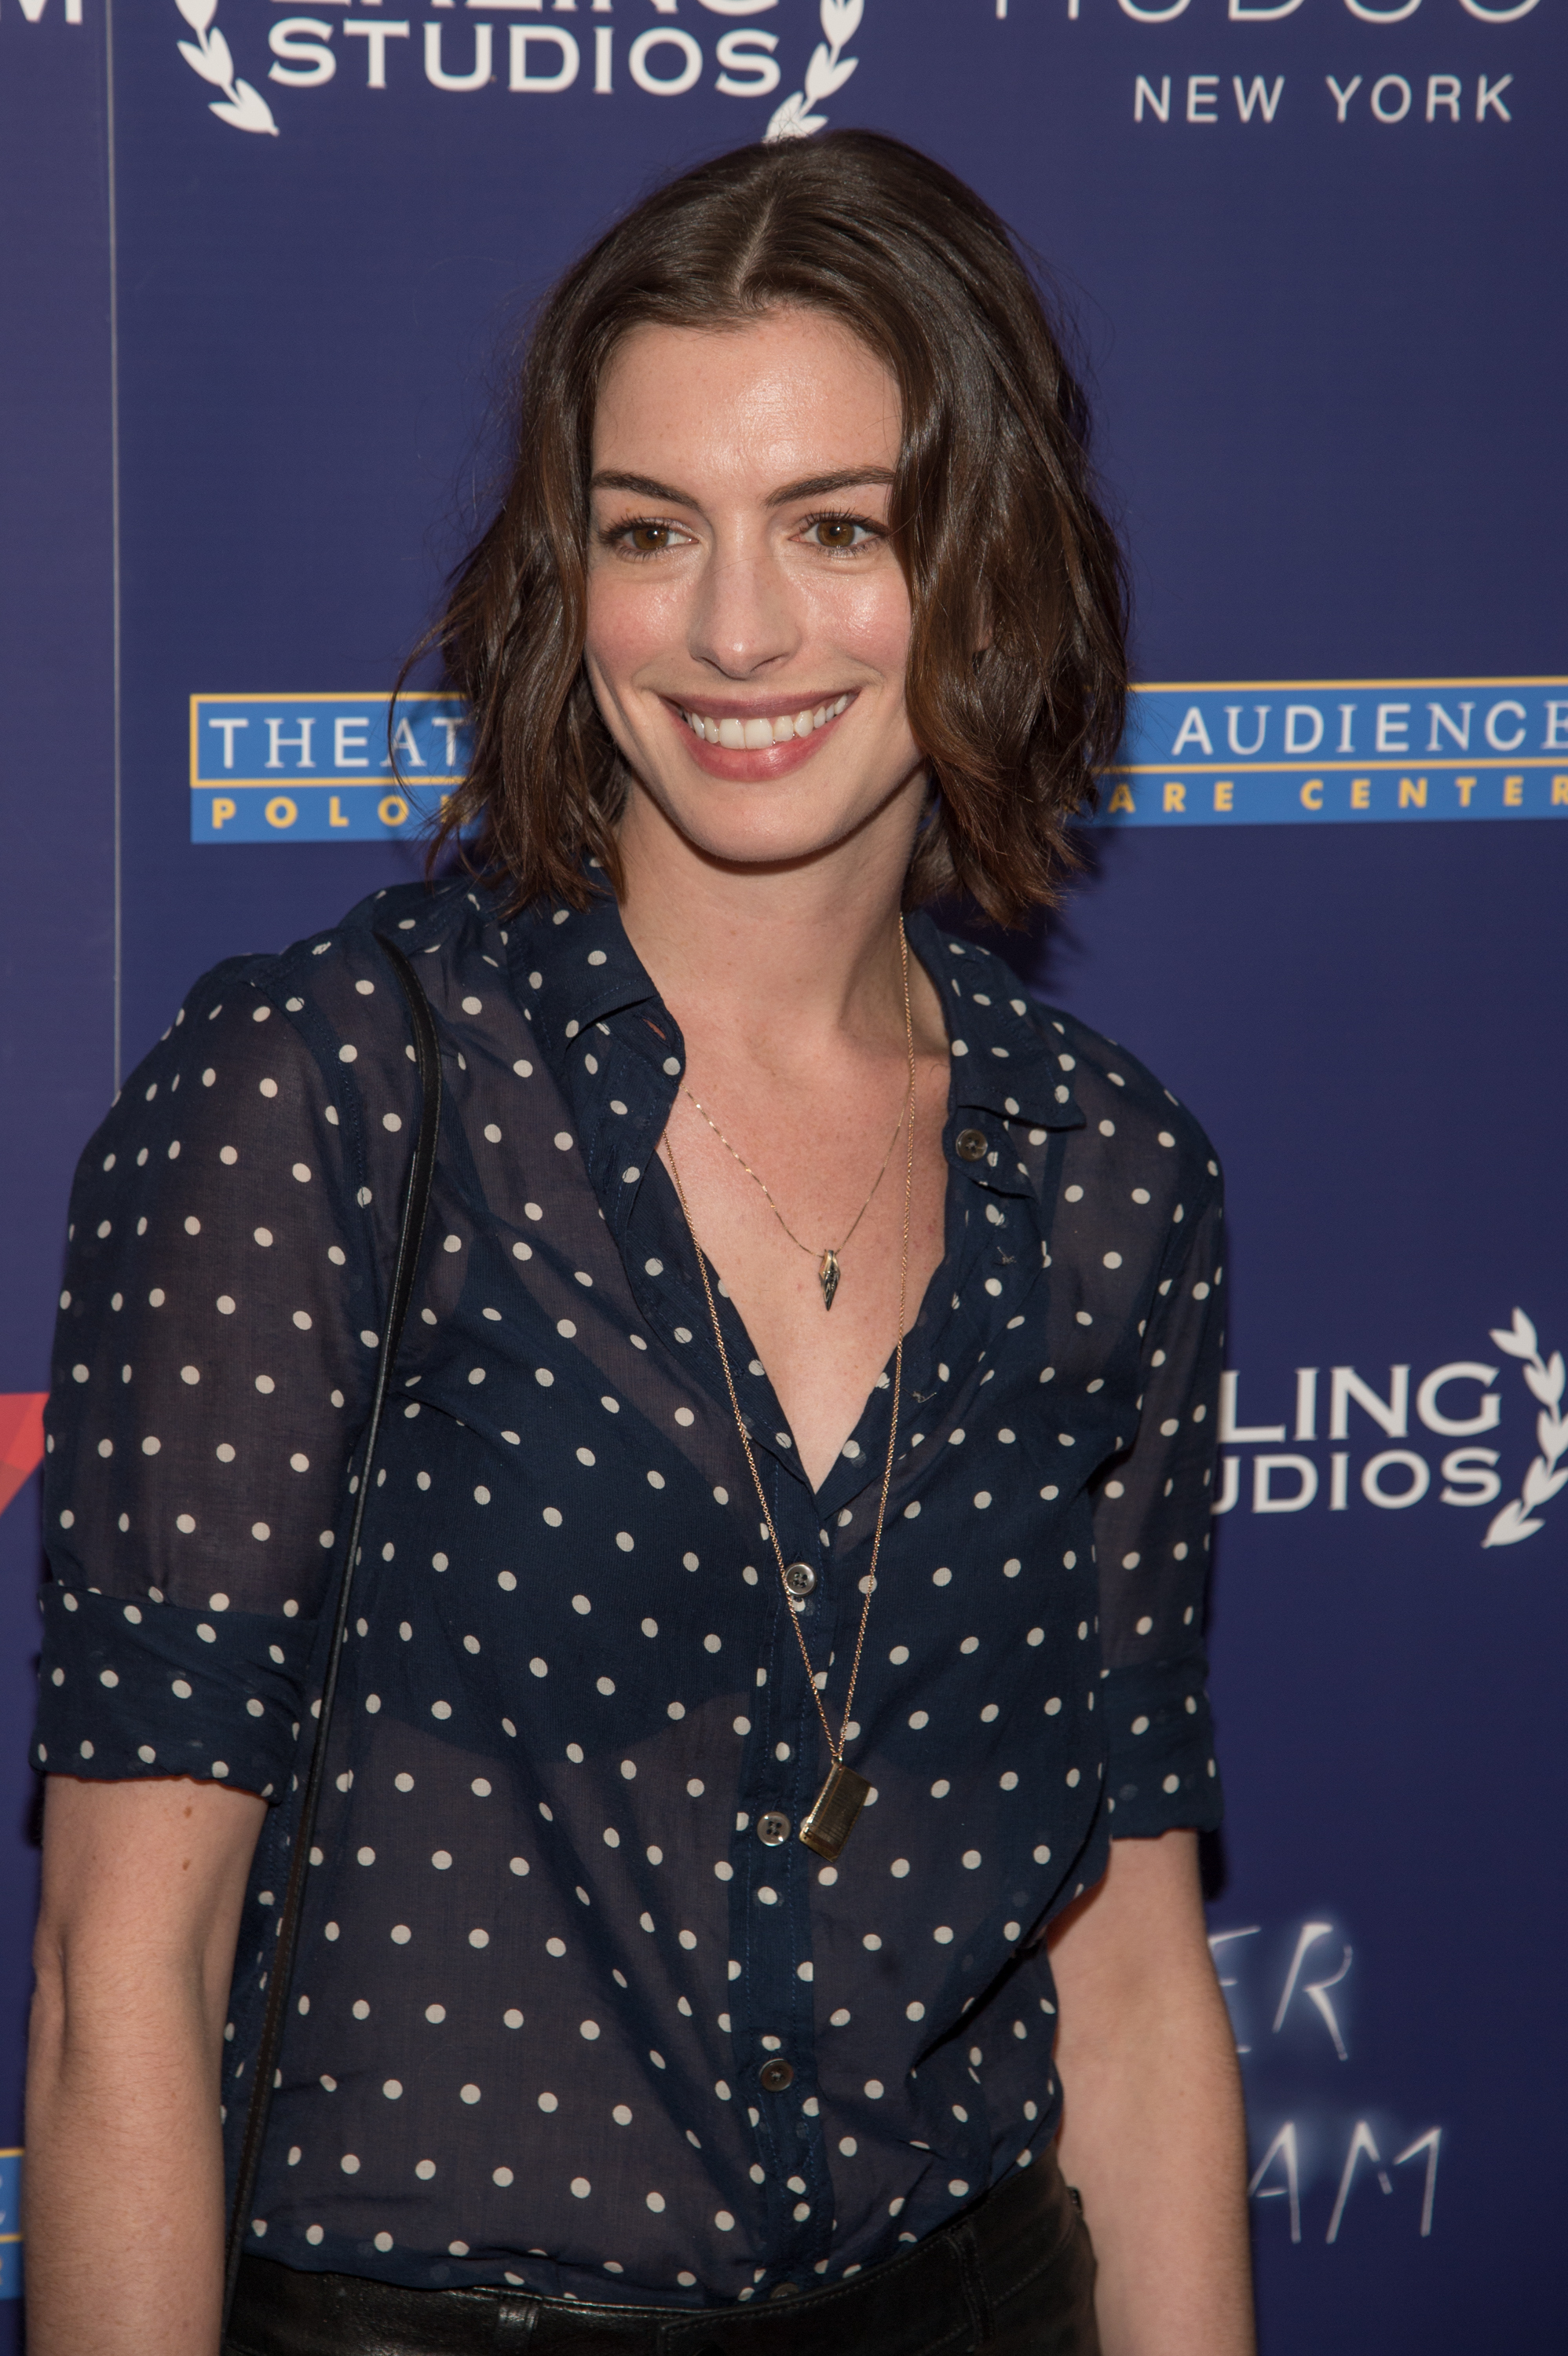 Anne Hathaway on June 15, 2015 in New York City.